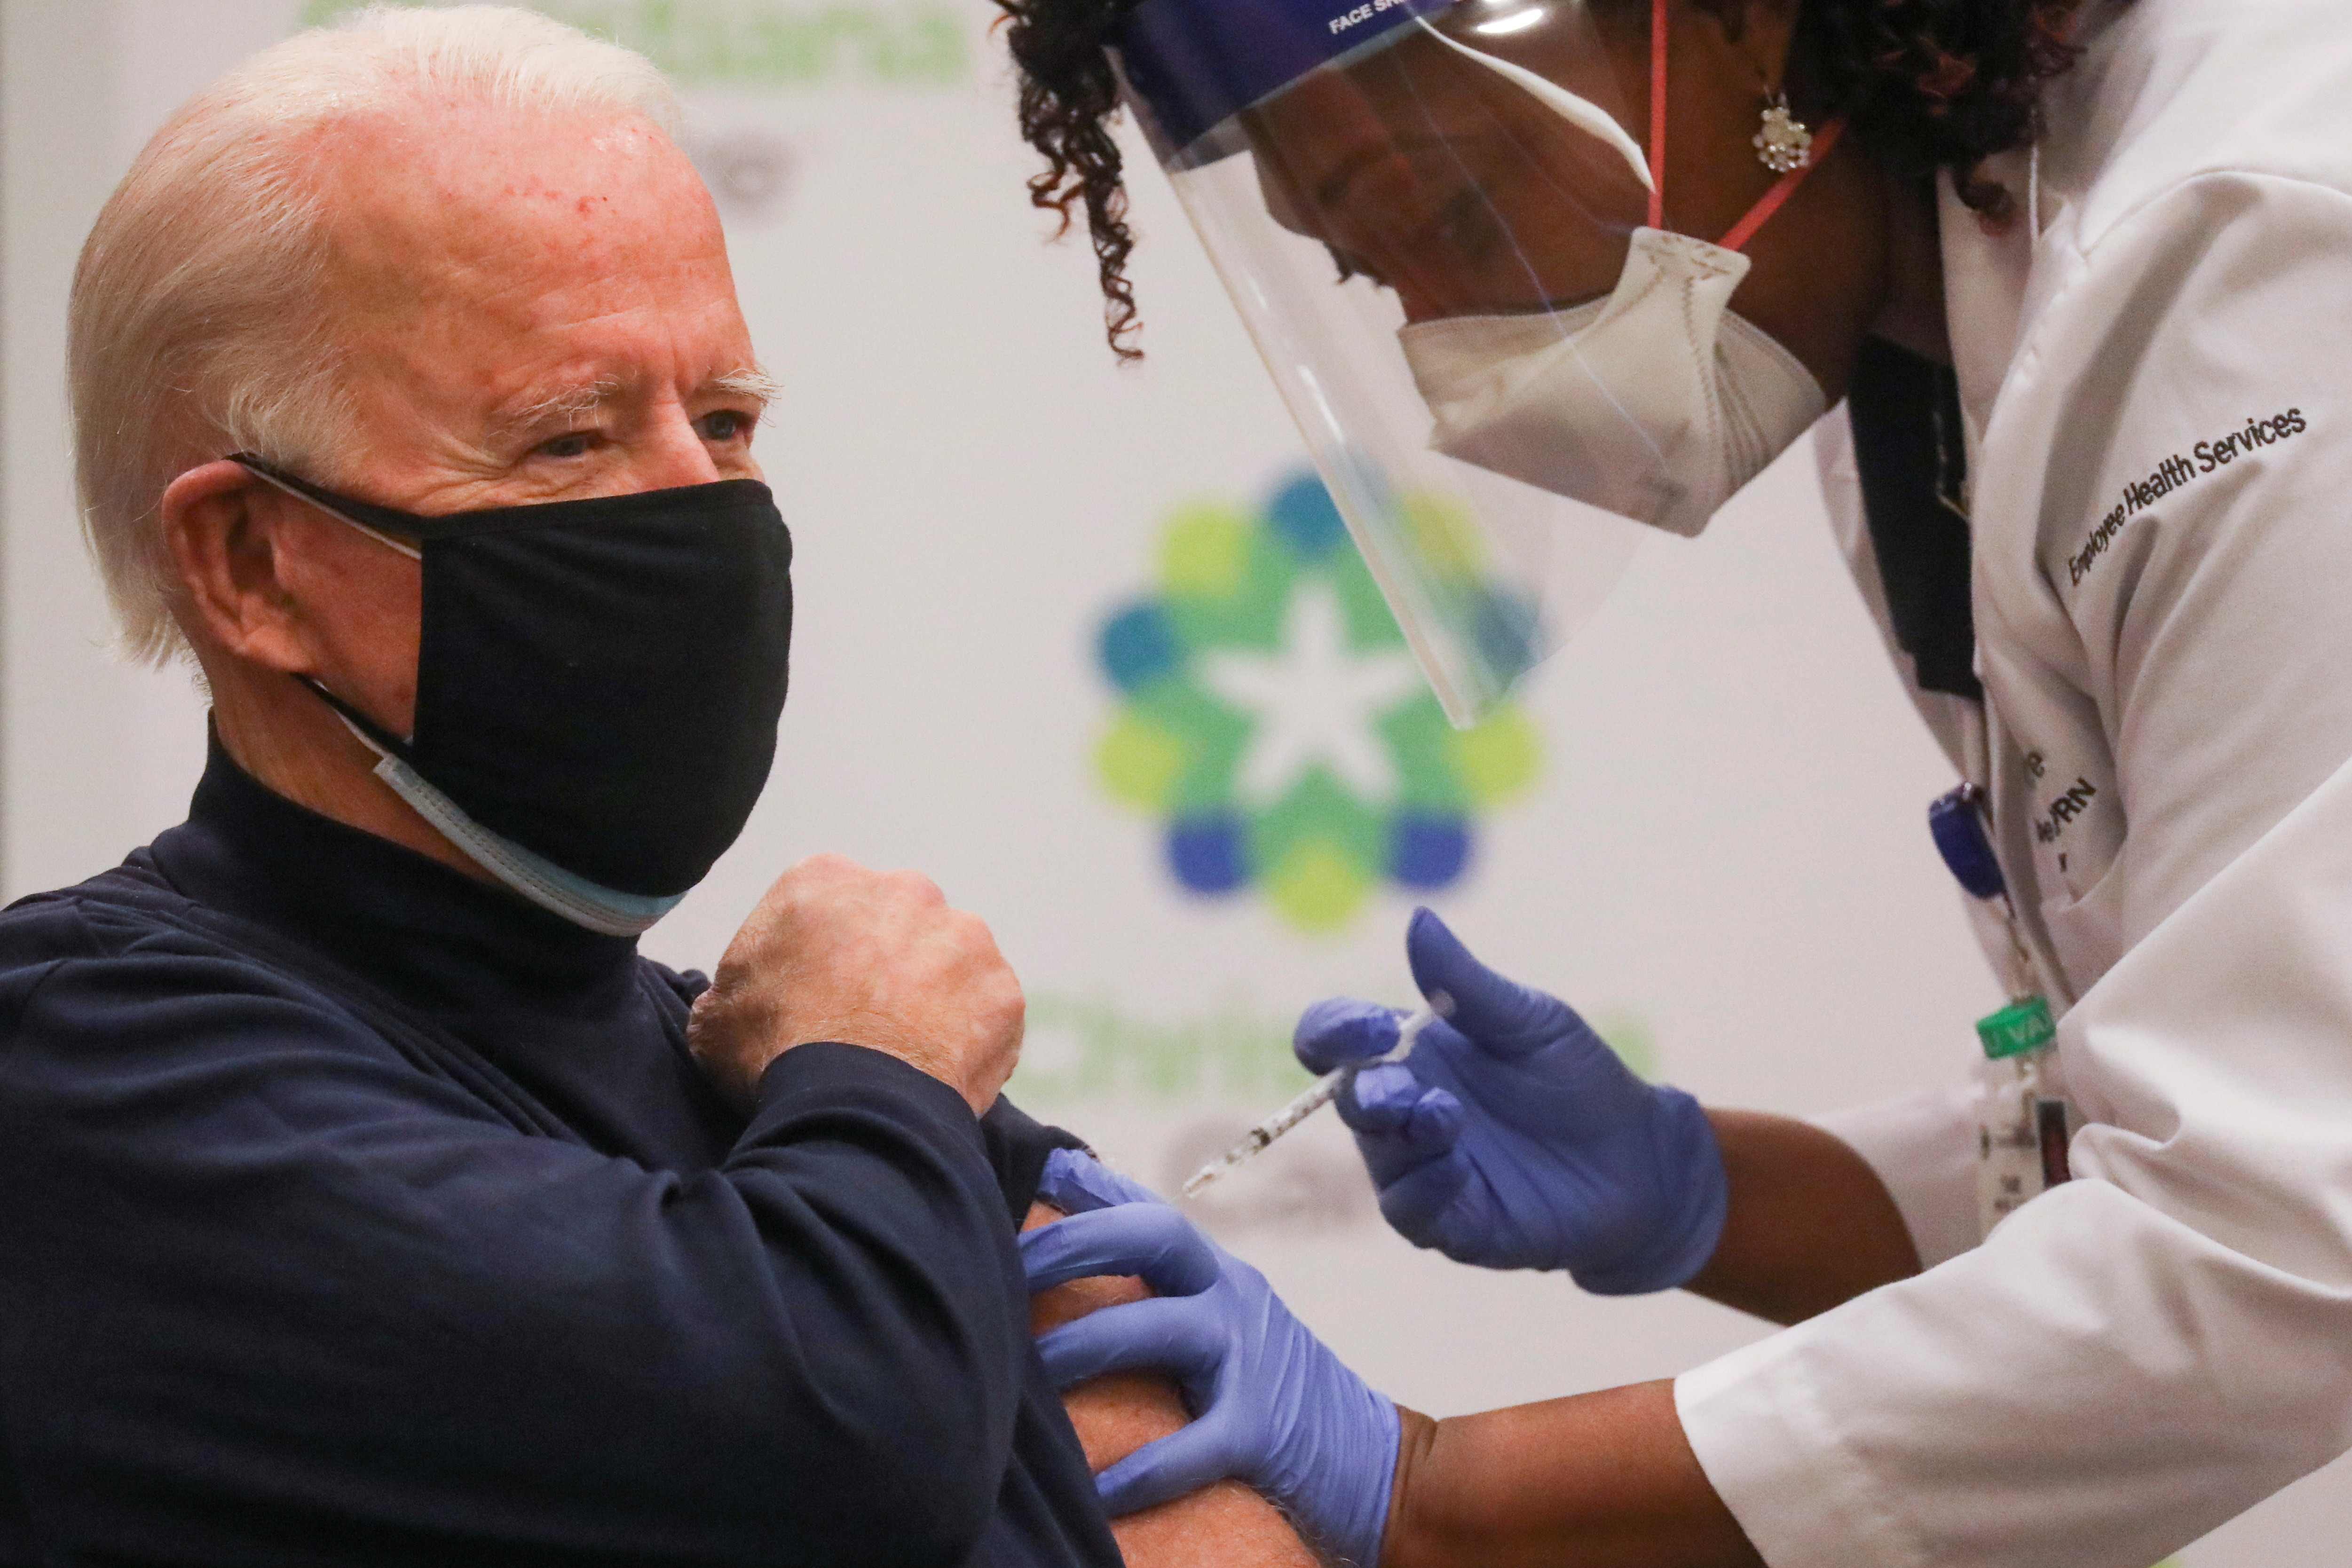 Nurse practitioner Tabe Mase gives U.S. President-elect Joe Biden a dose of a vaccine against the coronavirus disease (COVID-19) at ChristianaCare Christiana Hospital, in Newark, Delaware, U.S. December 21, 2020. REUTERS/Leah Millis     TPX IMAGES OF THE DAY - RC2WRK99XL3Q